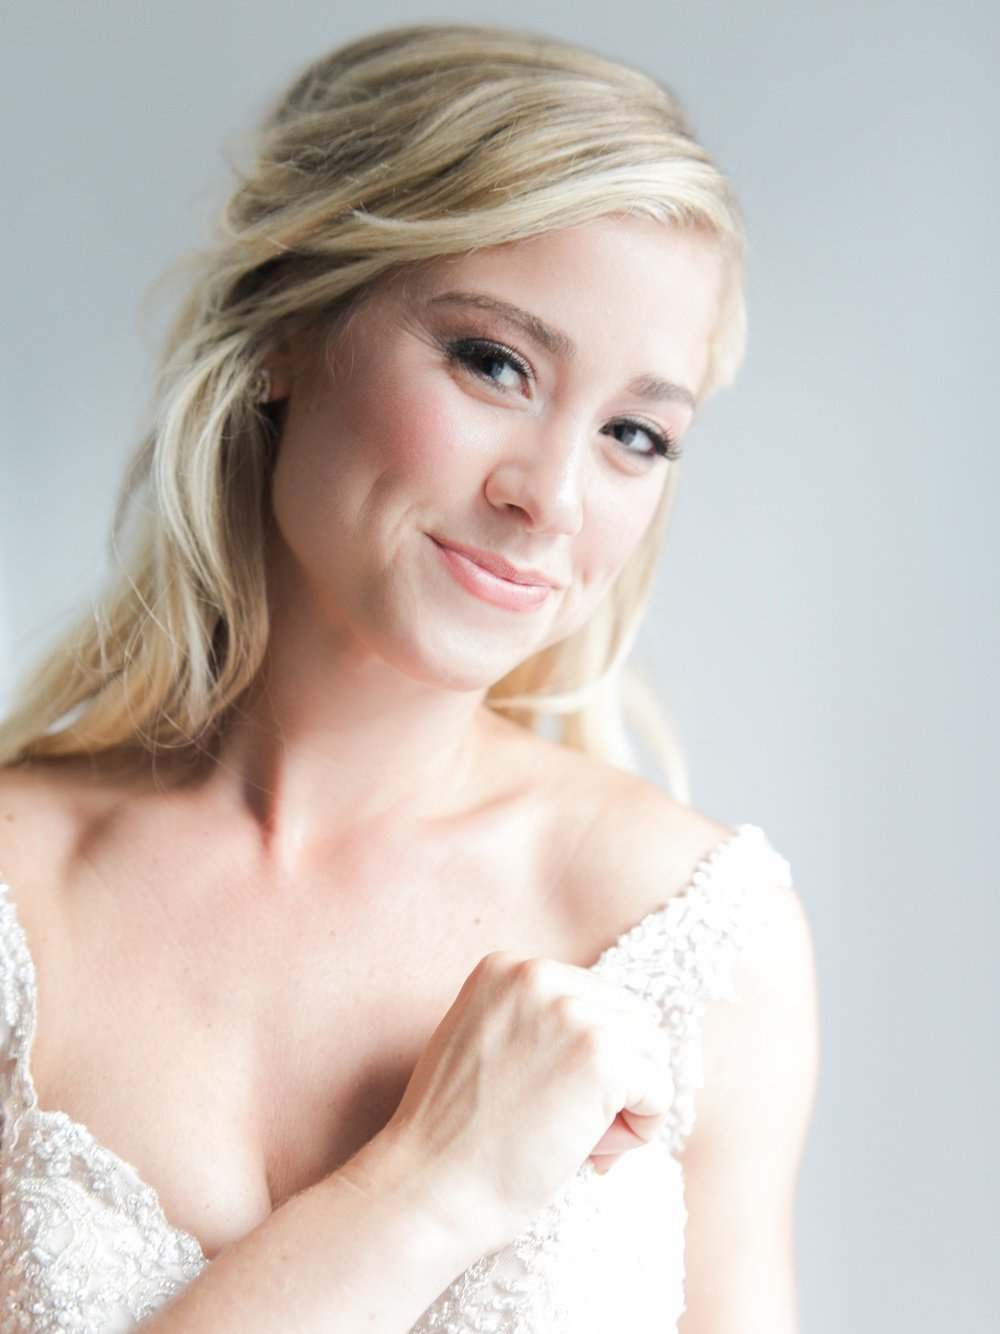 san-diego-wedding-photographer-mandy-ford-photography_0183